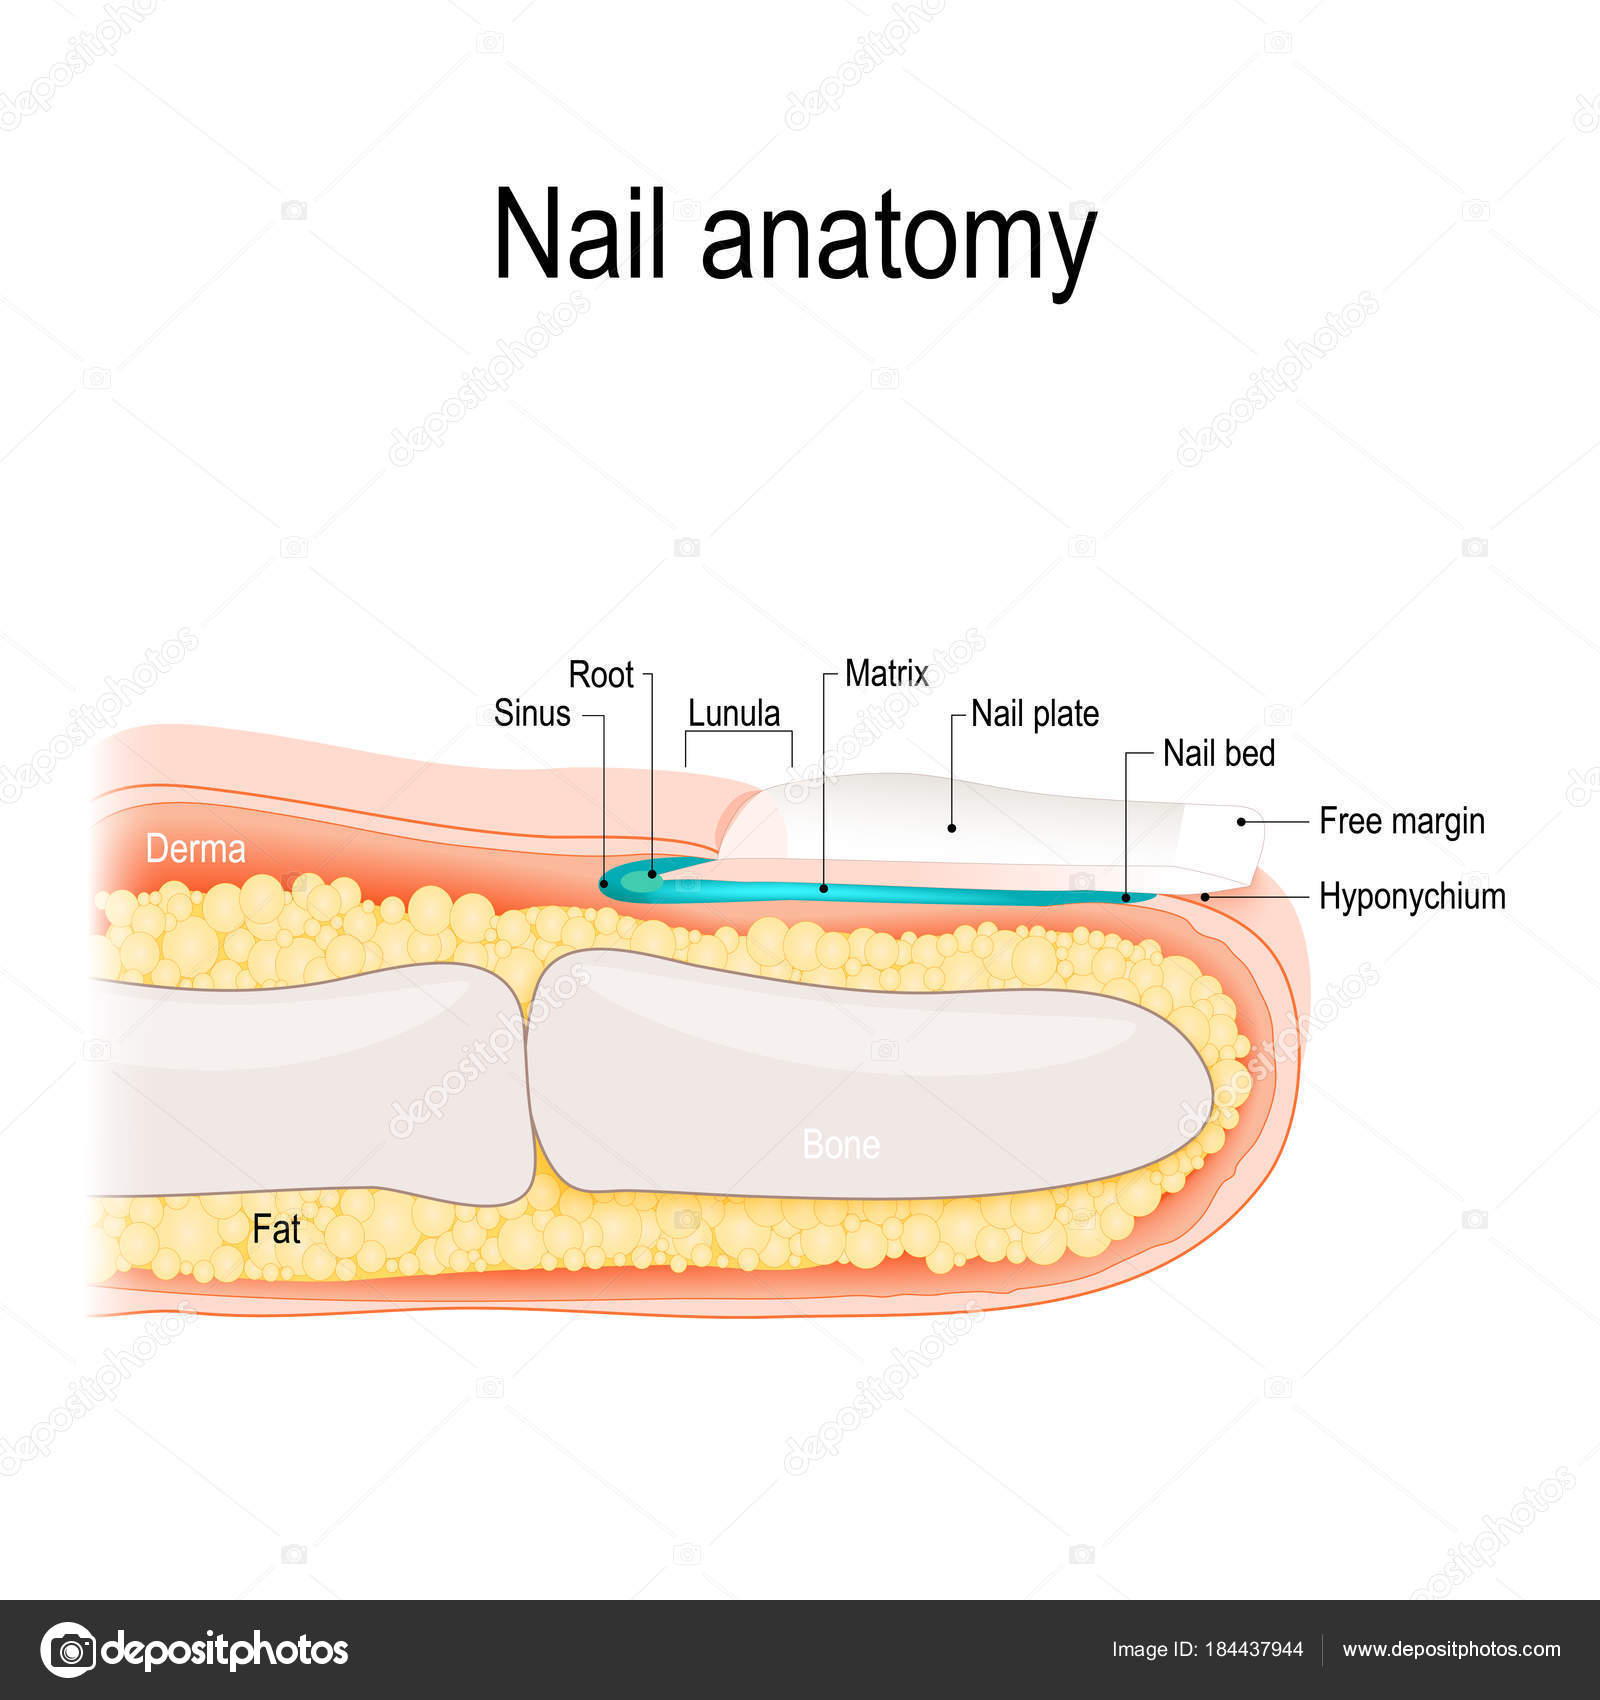 Nail anatomy — Stock Vector © edesignua #184437944